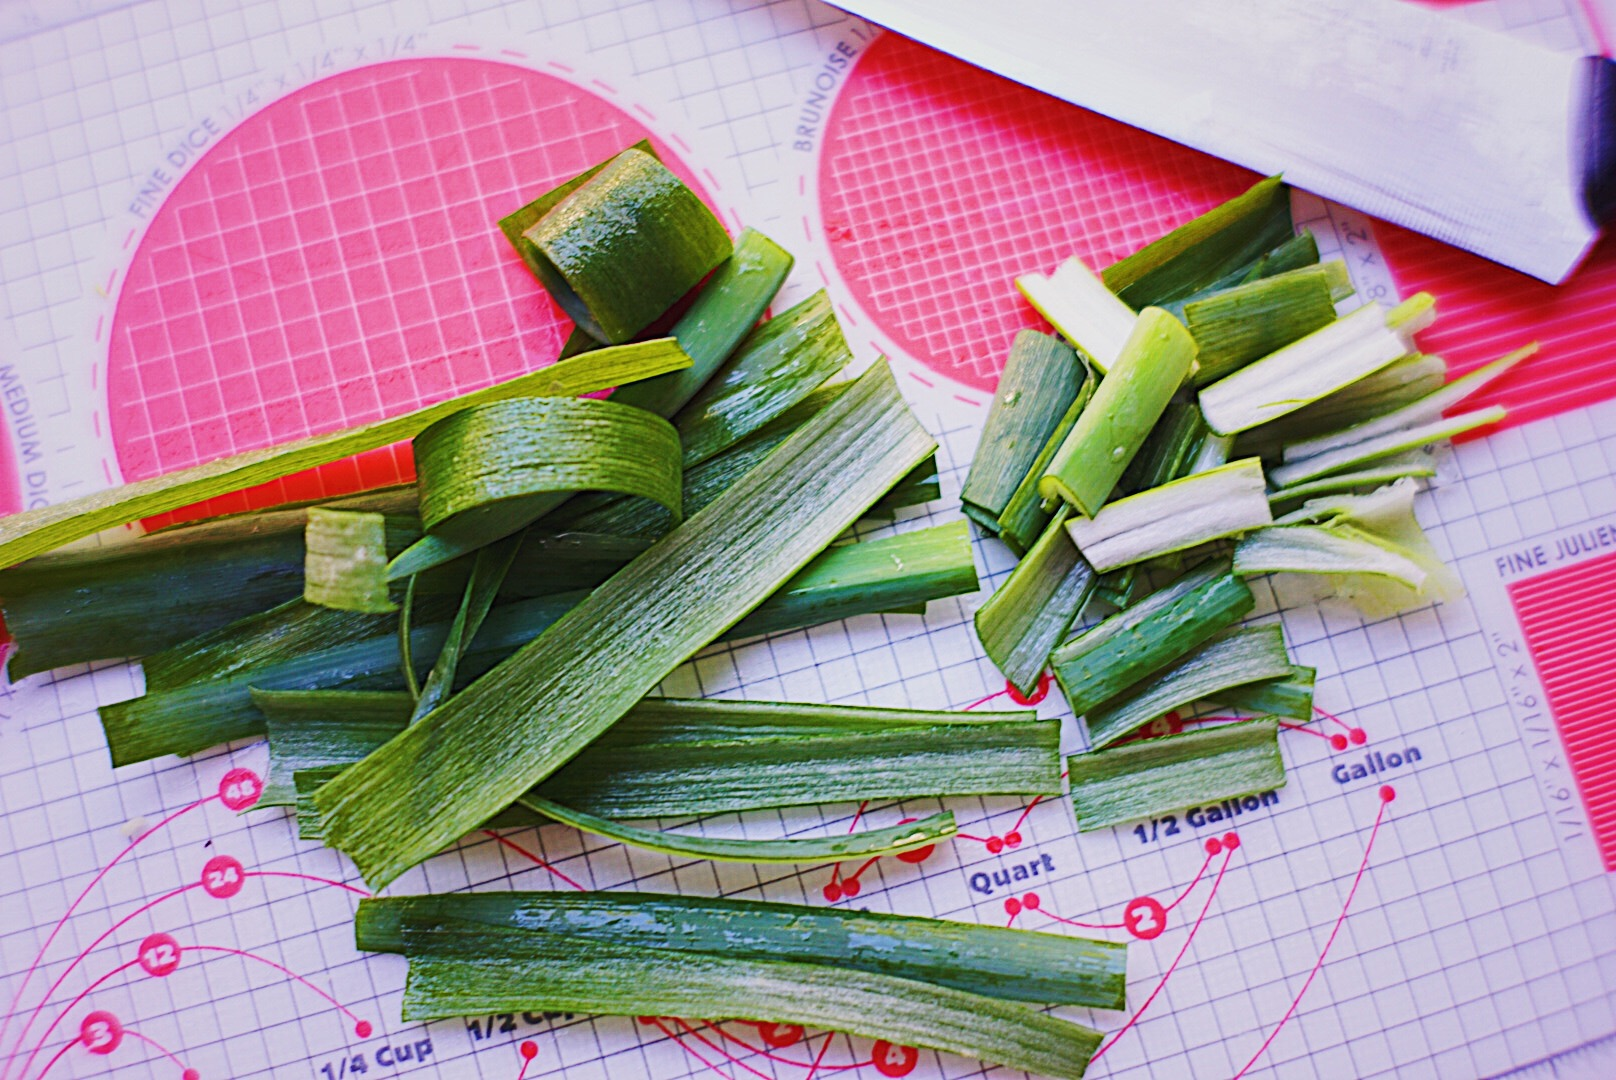 Cut off the white section of the leek to add into soup. Then cut green sections into 1 inch long pieces.